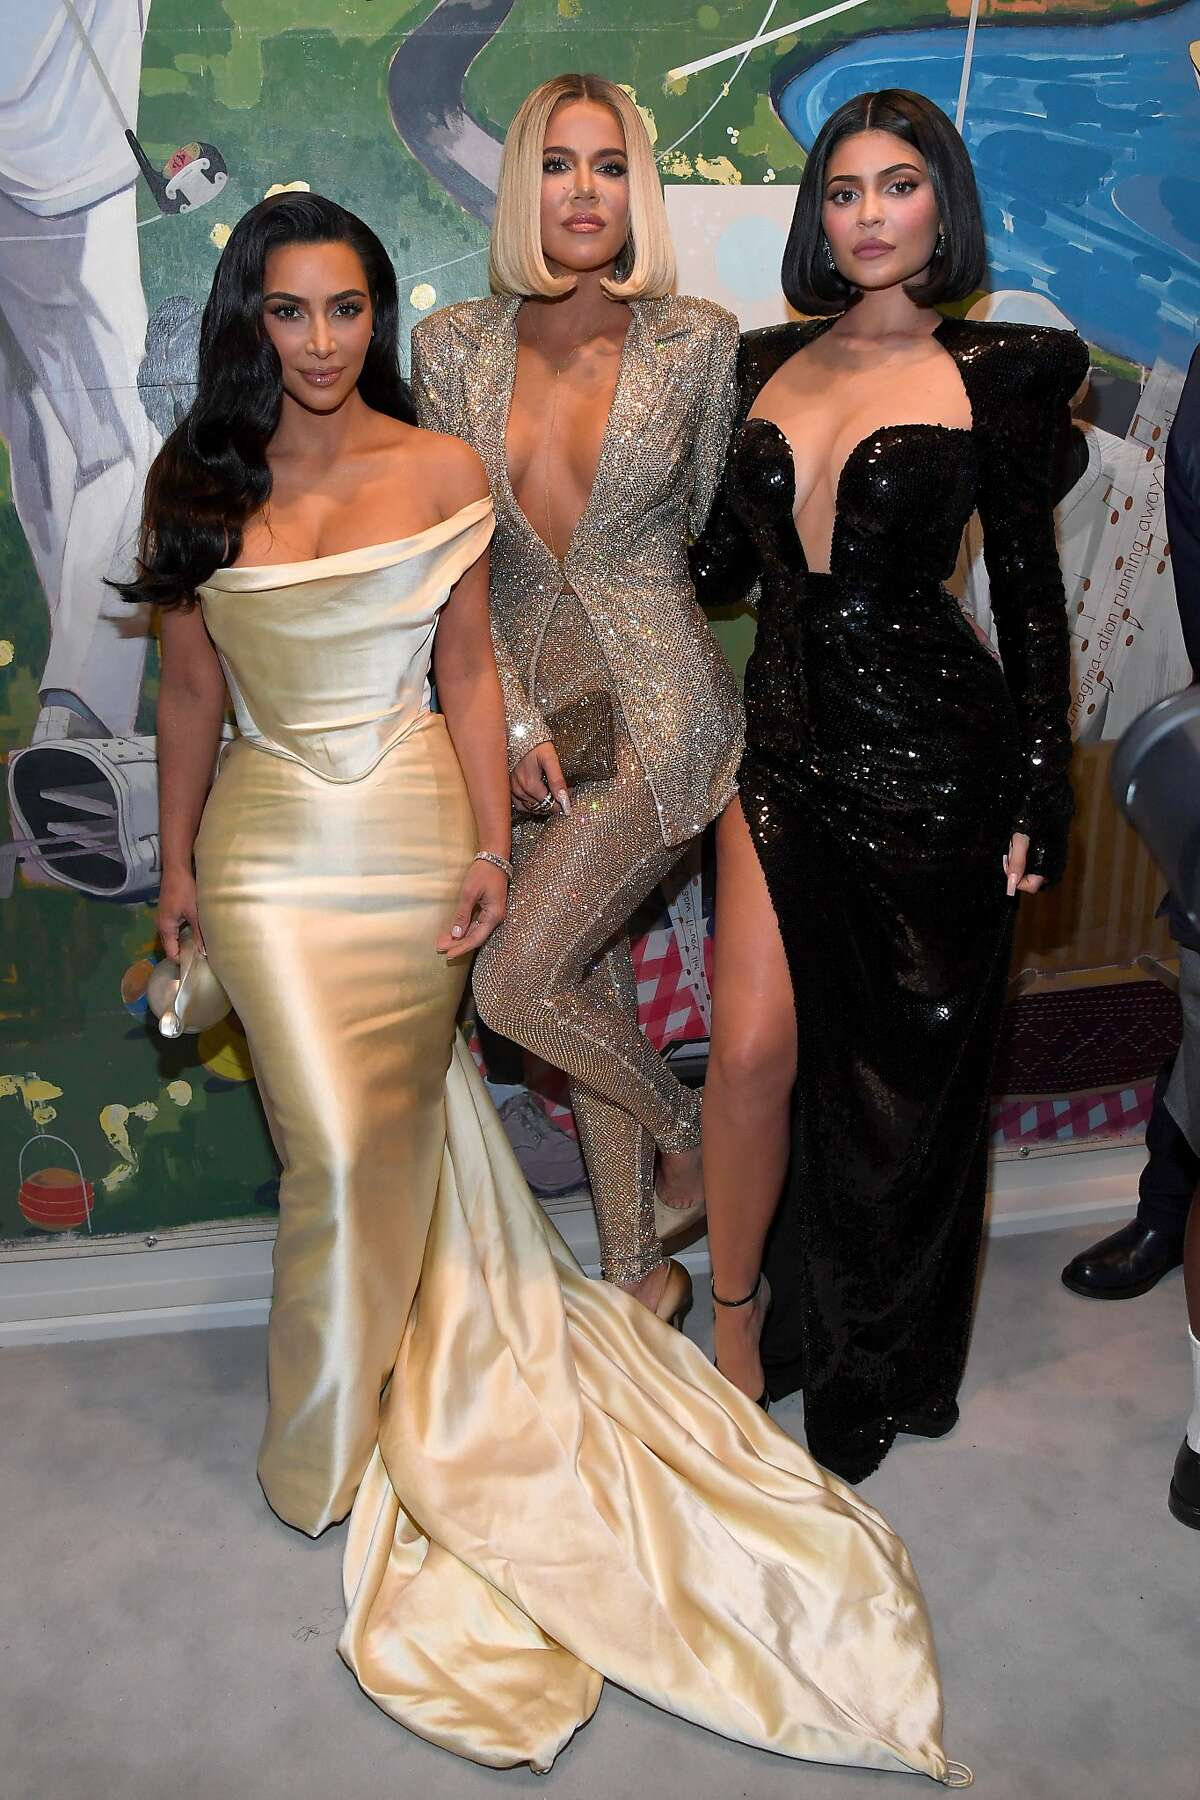 Kim Kardashian West, Khloe Kardashian and Kylie Jenner attend Sean Combs 50th Birthday Bash presented by Ciroc Vodka.